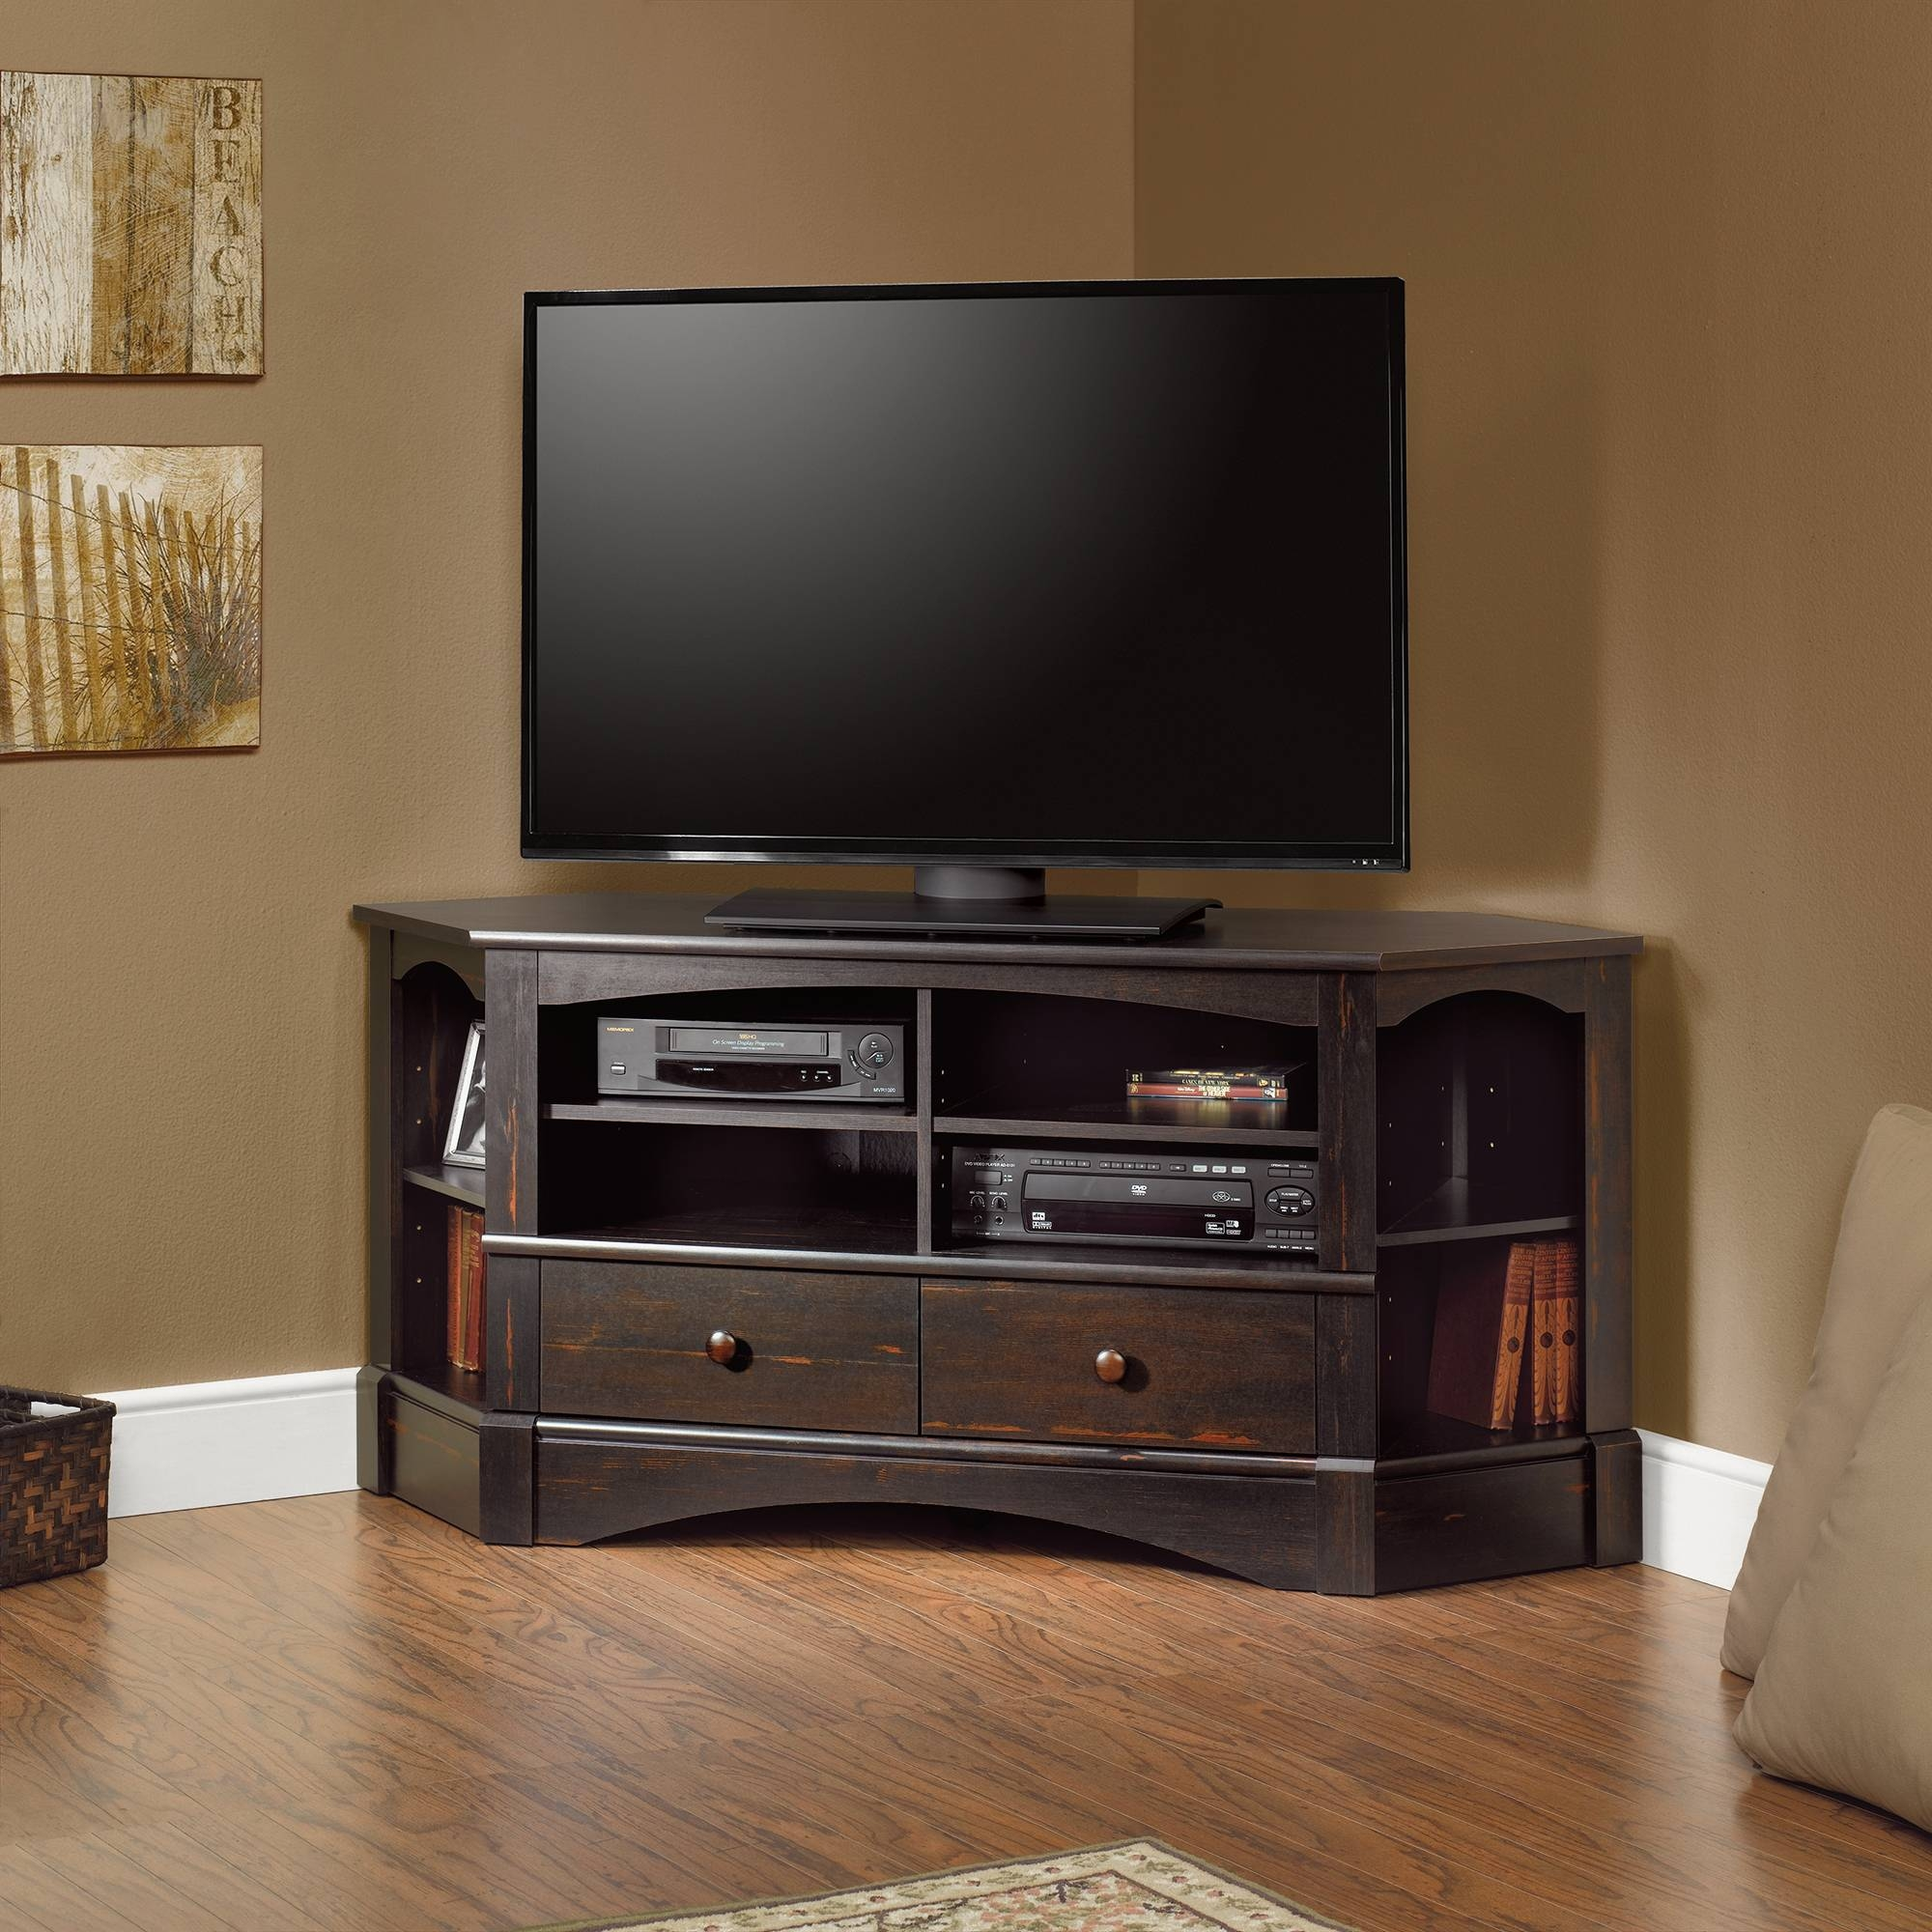 Small Wooden Corner Tv Stand Console Cabinet With Fireplace For Cornet Tv Stands (View 7 of 15)